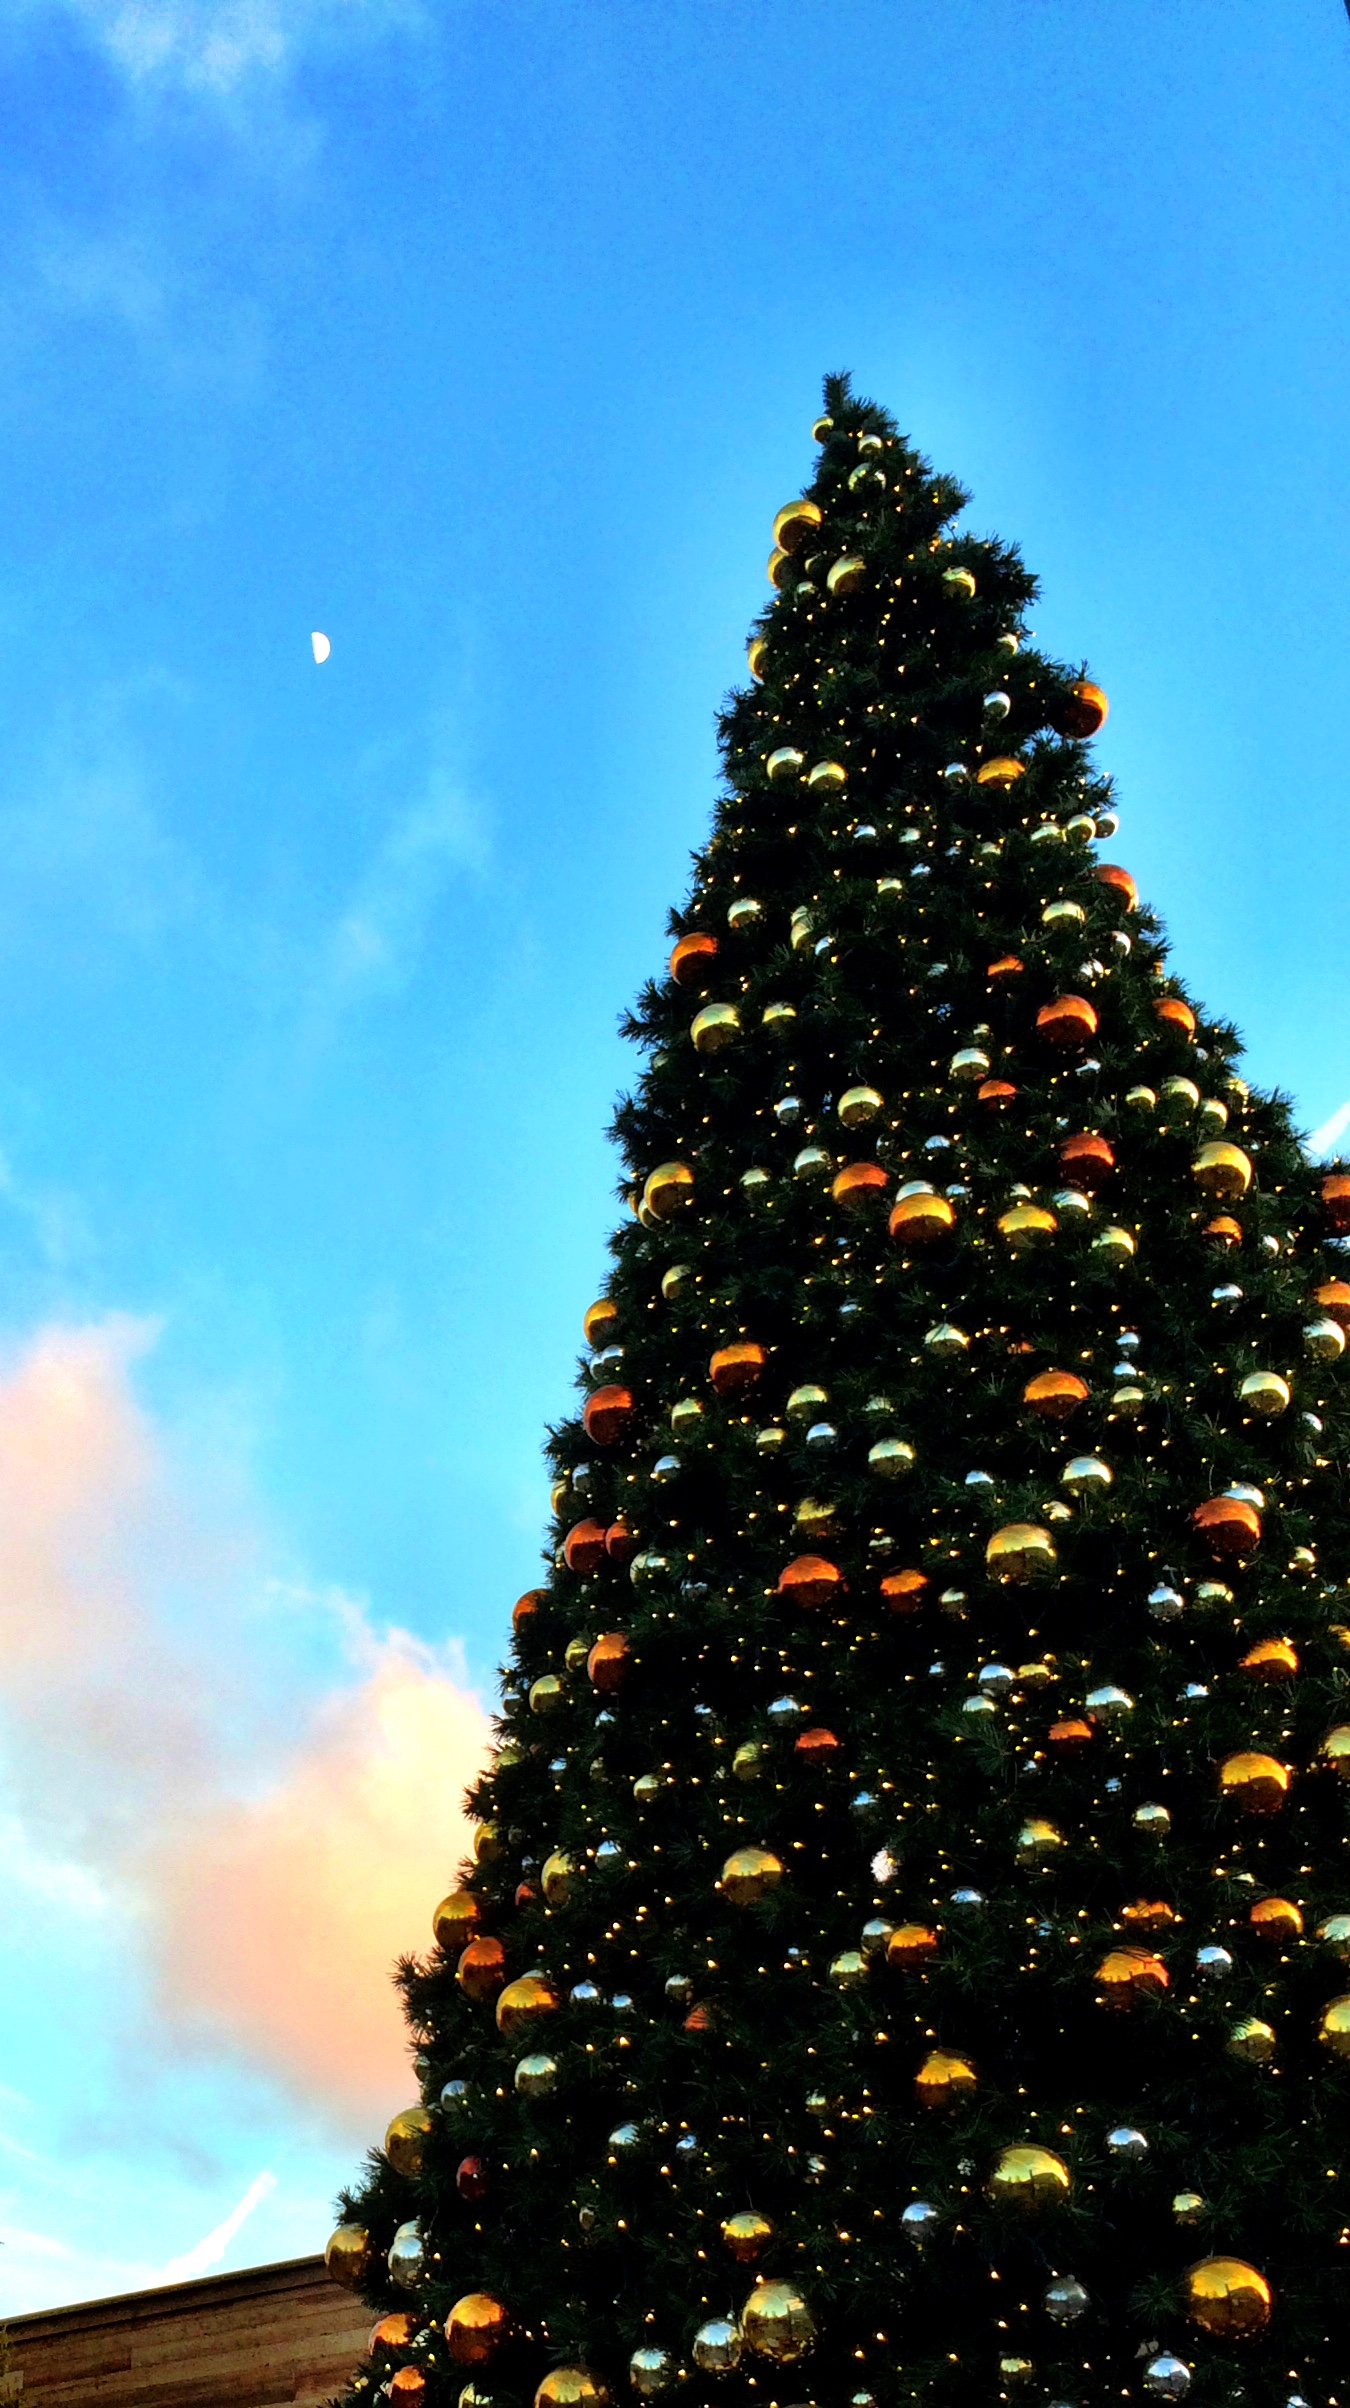 Christmas tree and moon